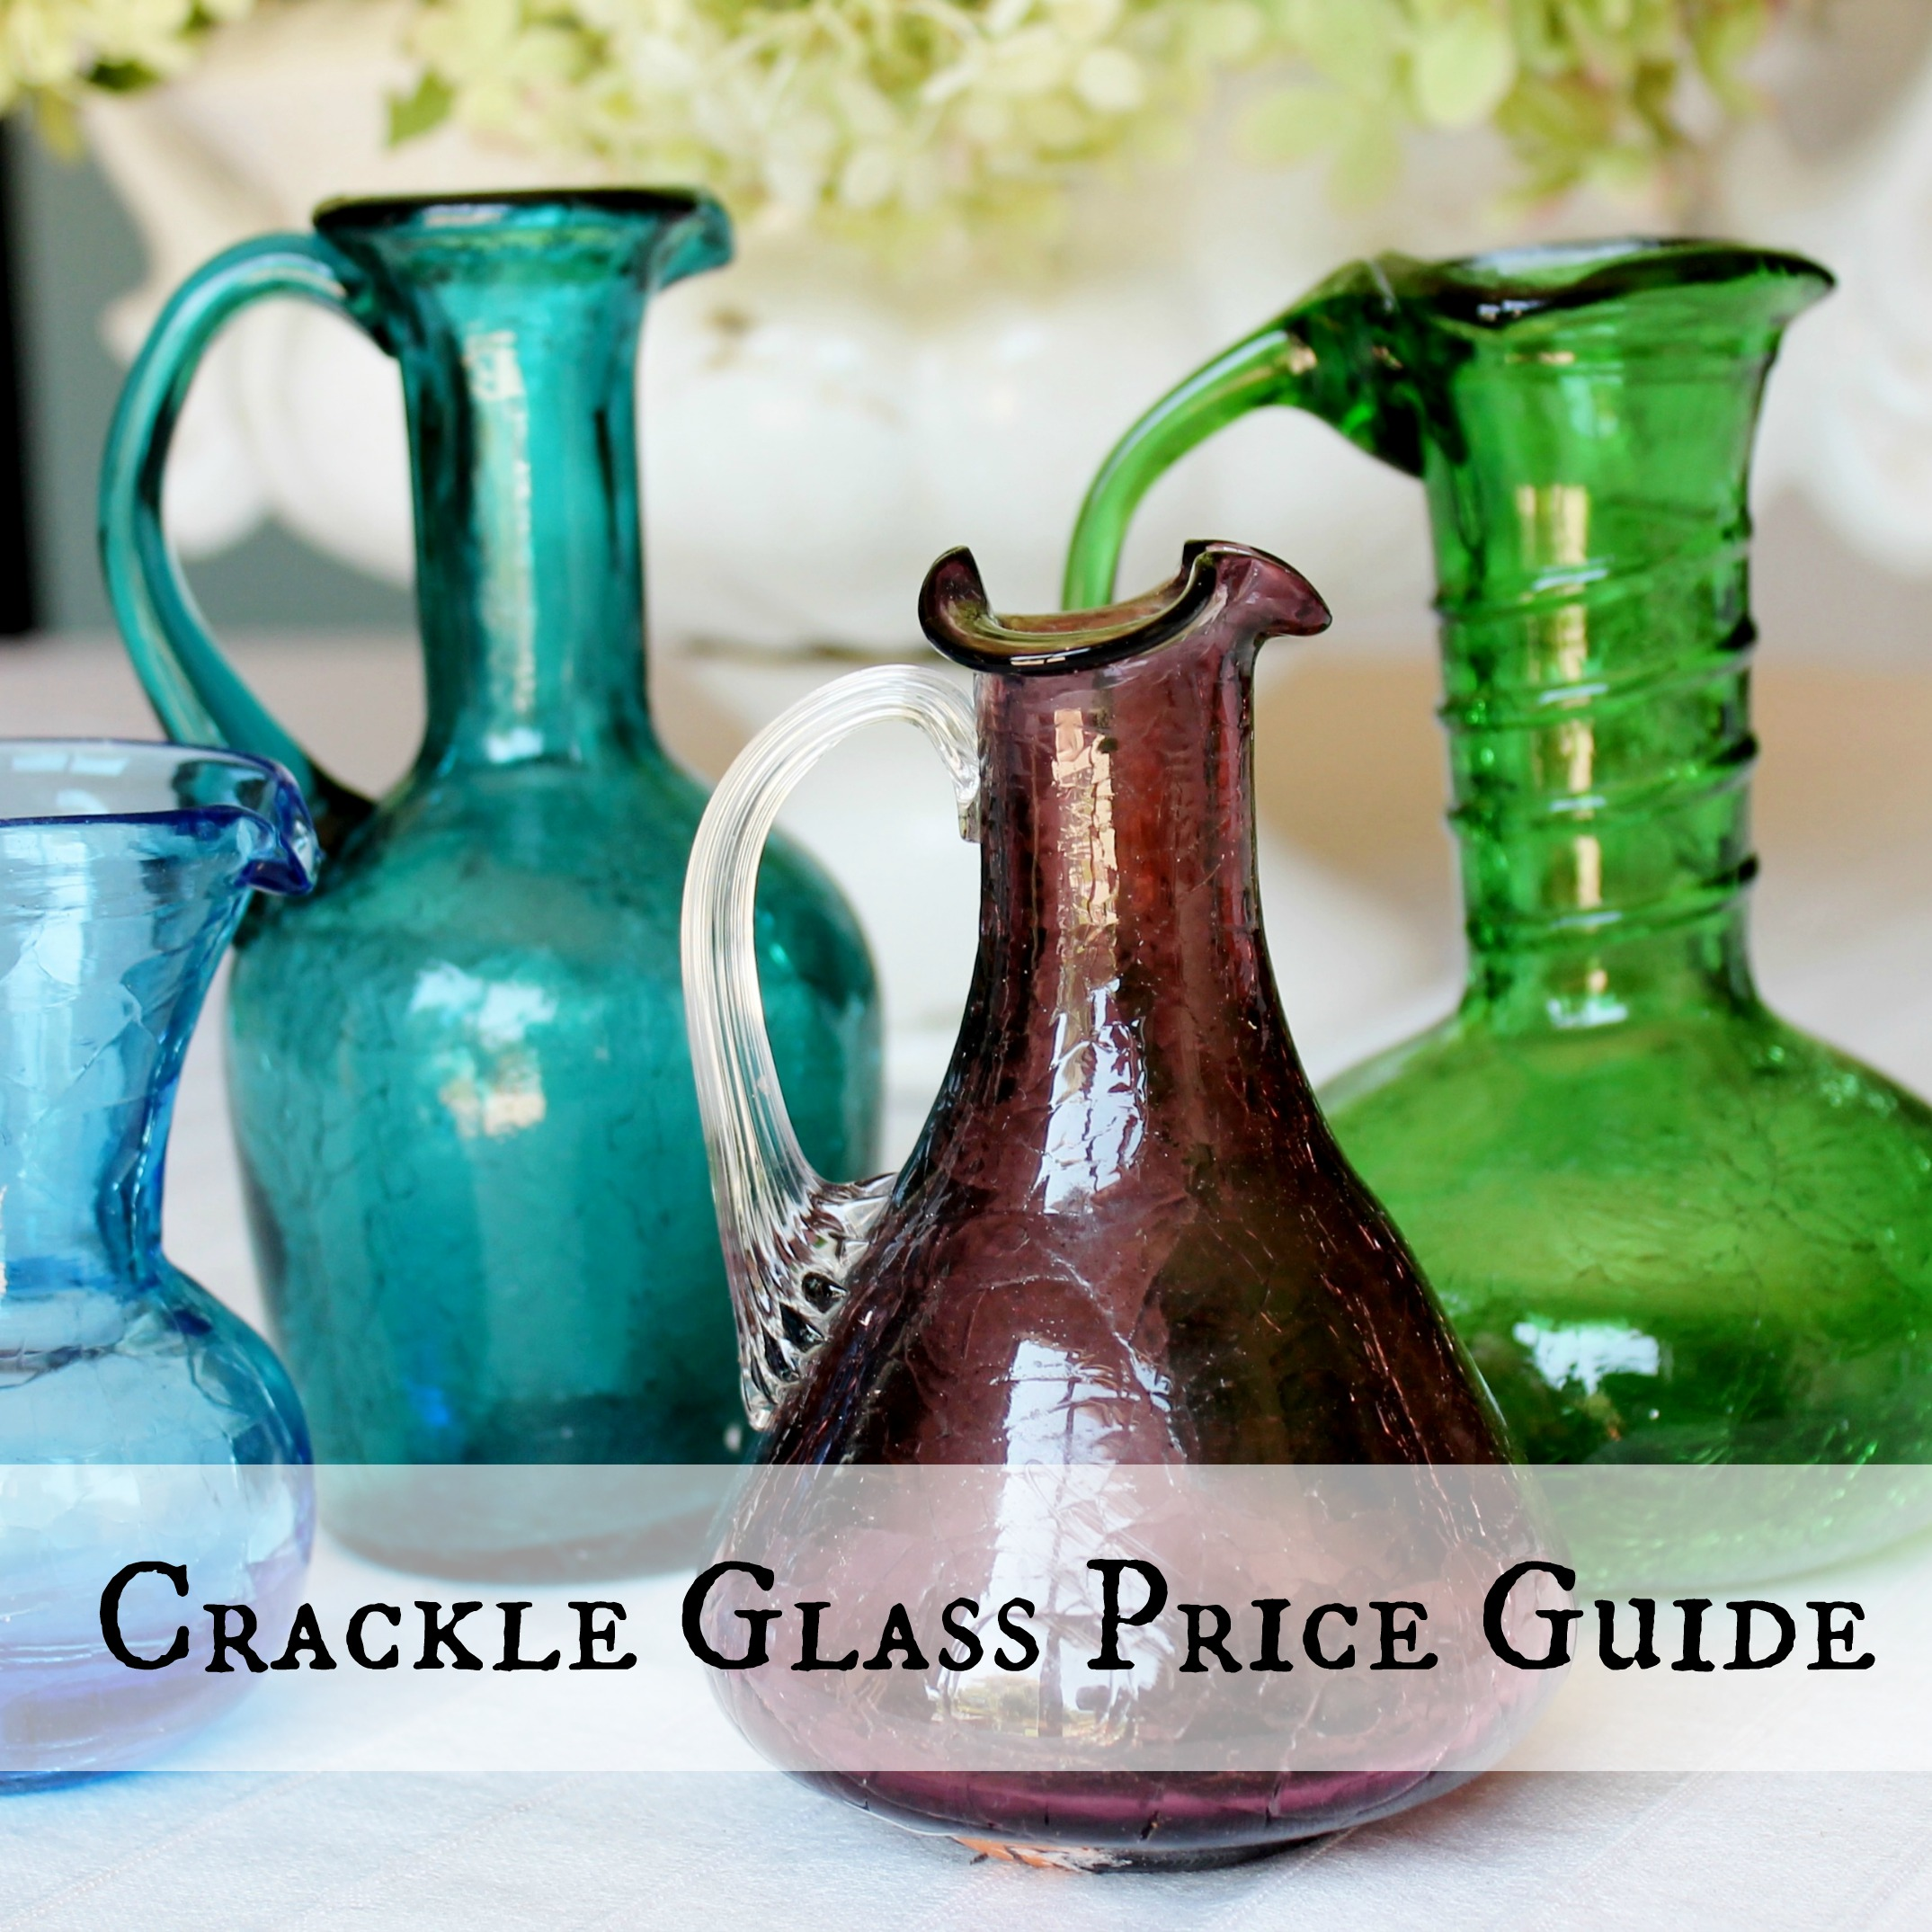 Antique vintage crackle glass price guide adirondack girl heart reviewsmspy